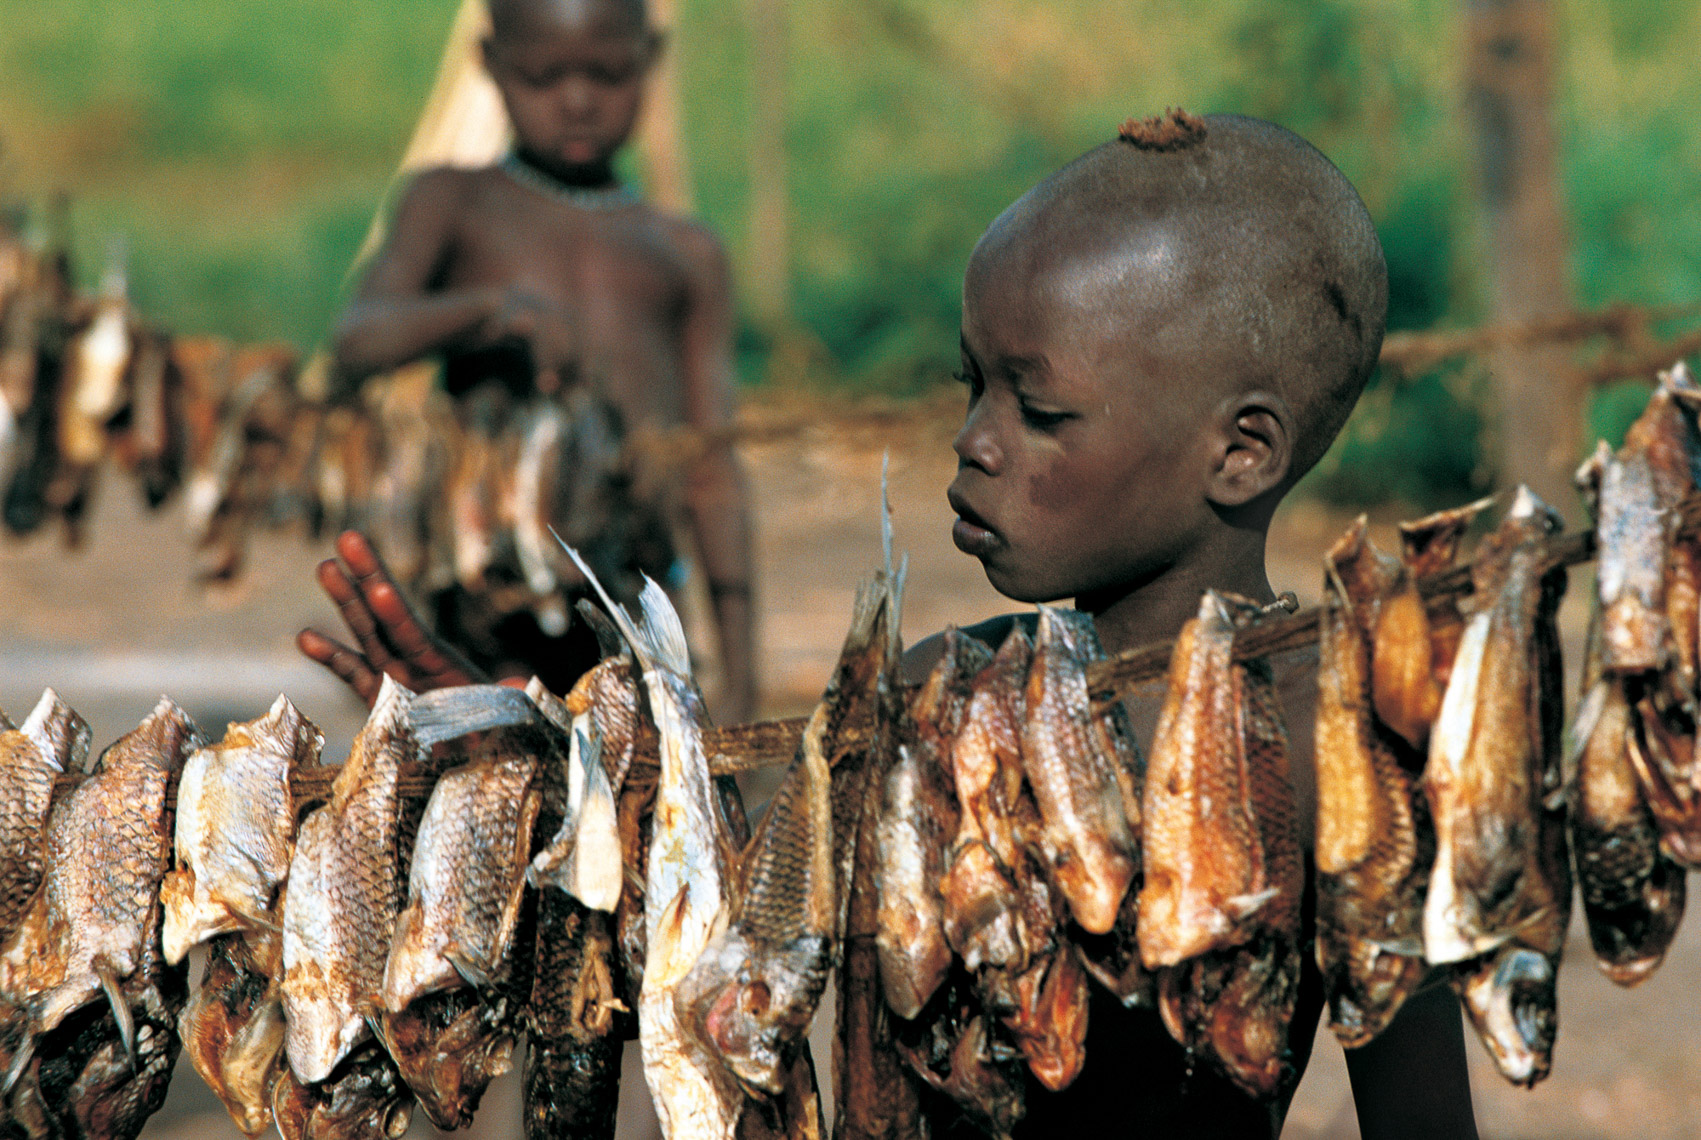 Dinka Child Drying Fish in the Sun, South Sudan